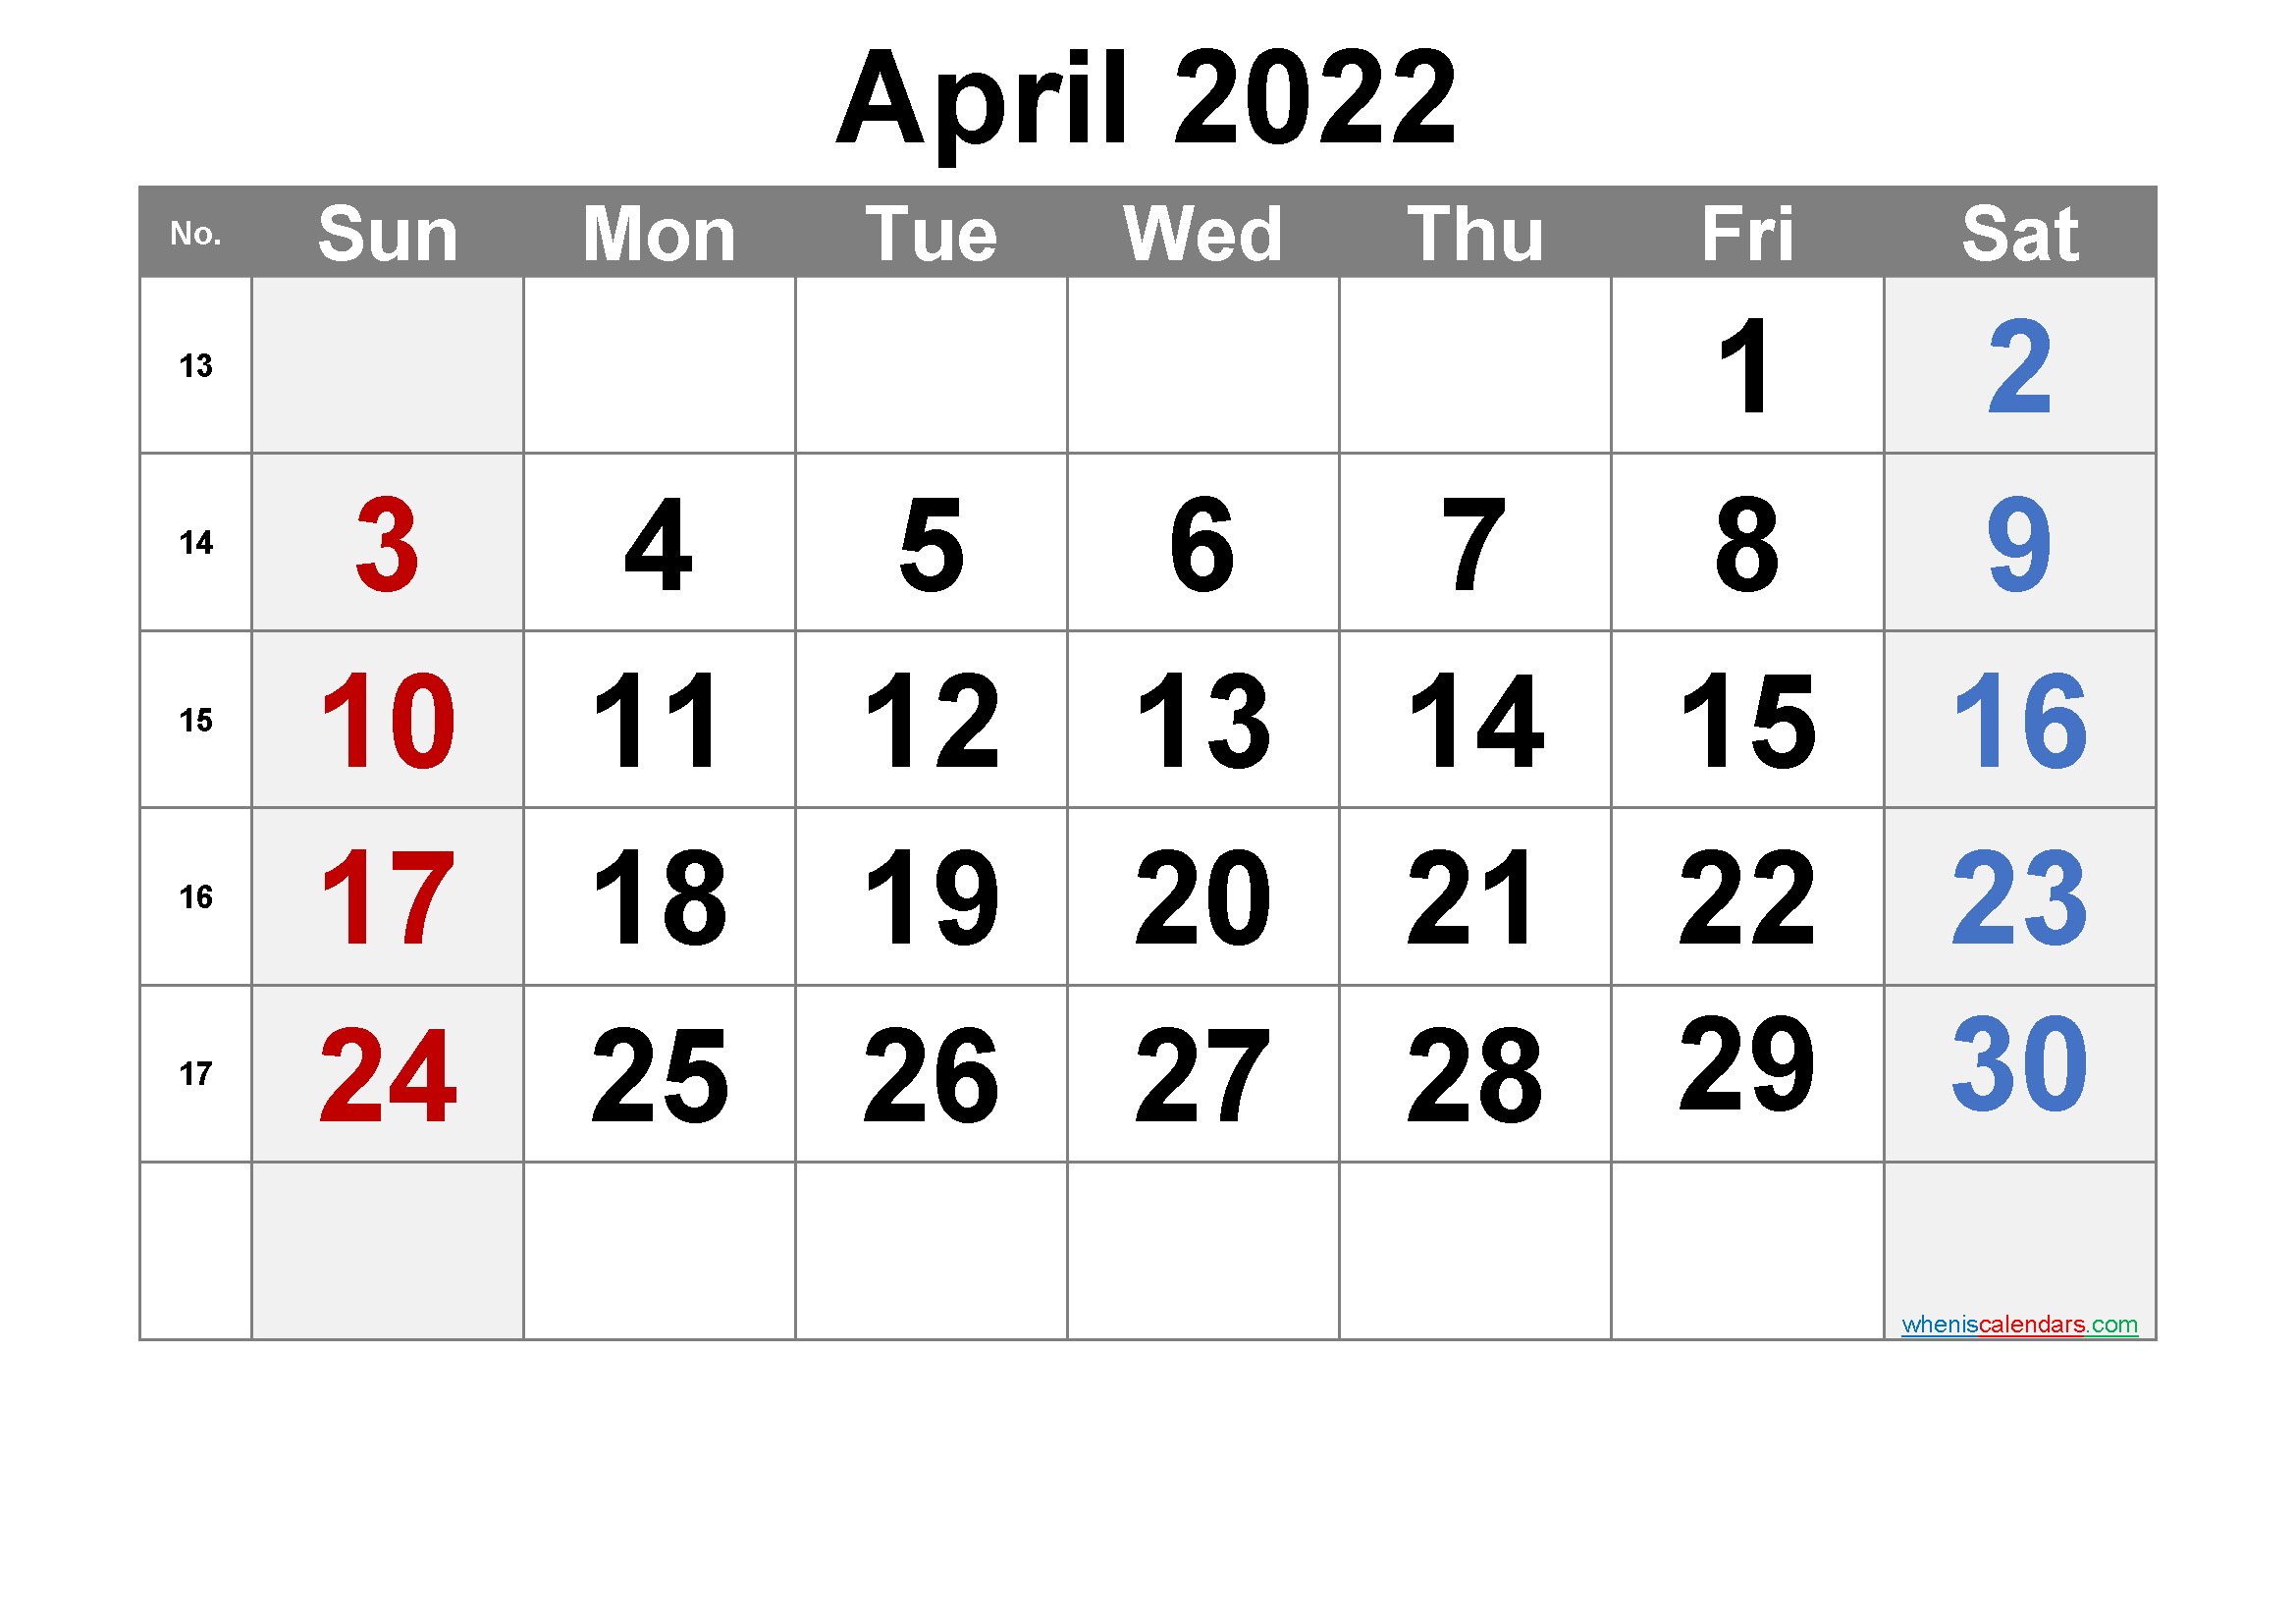 Free April 2022 Calendar With Week Numbers - Free within April Monthly Calendar 2022 Free Printable Photo